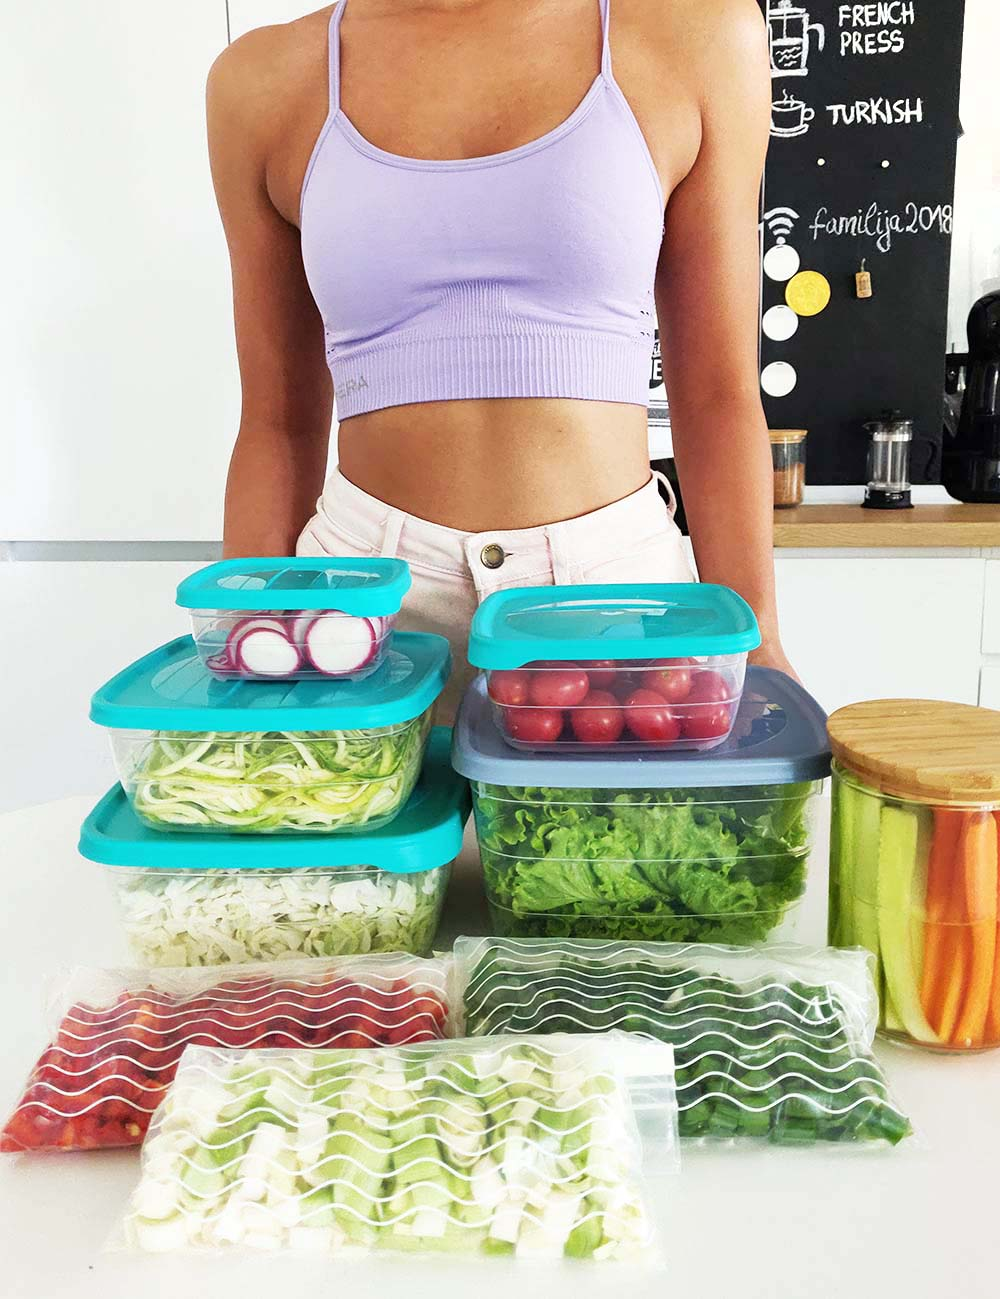 How I Meal Prep Vegetables To Make Sure I Eat Healthy - Meal Prep Veggies